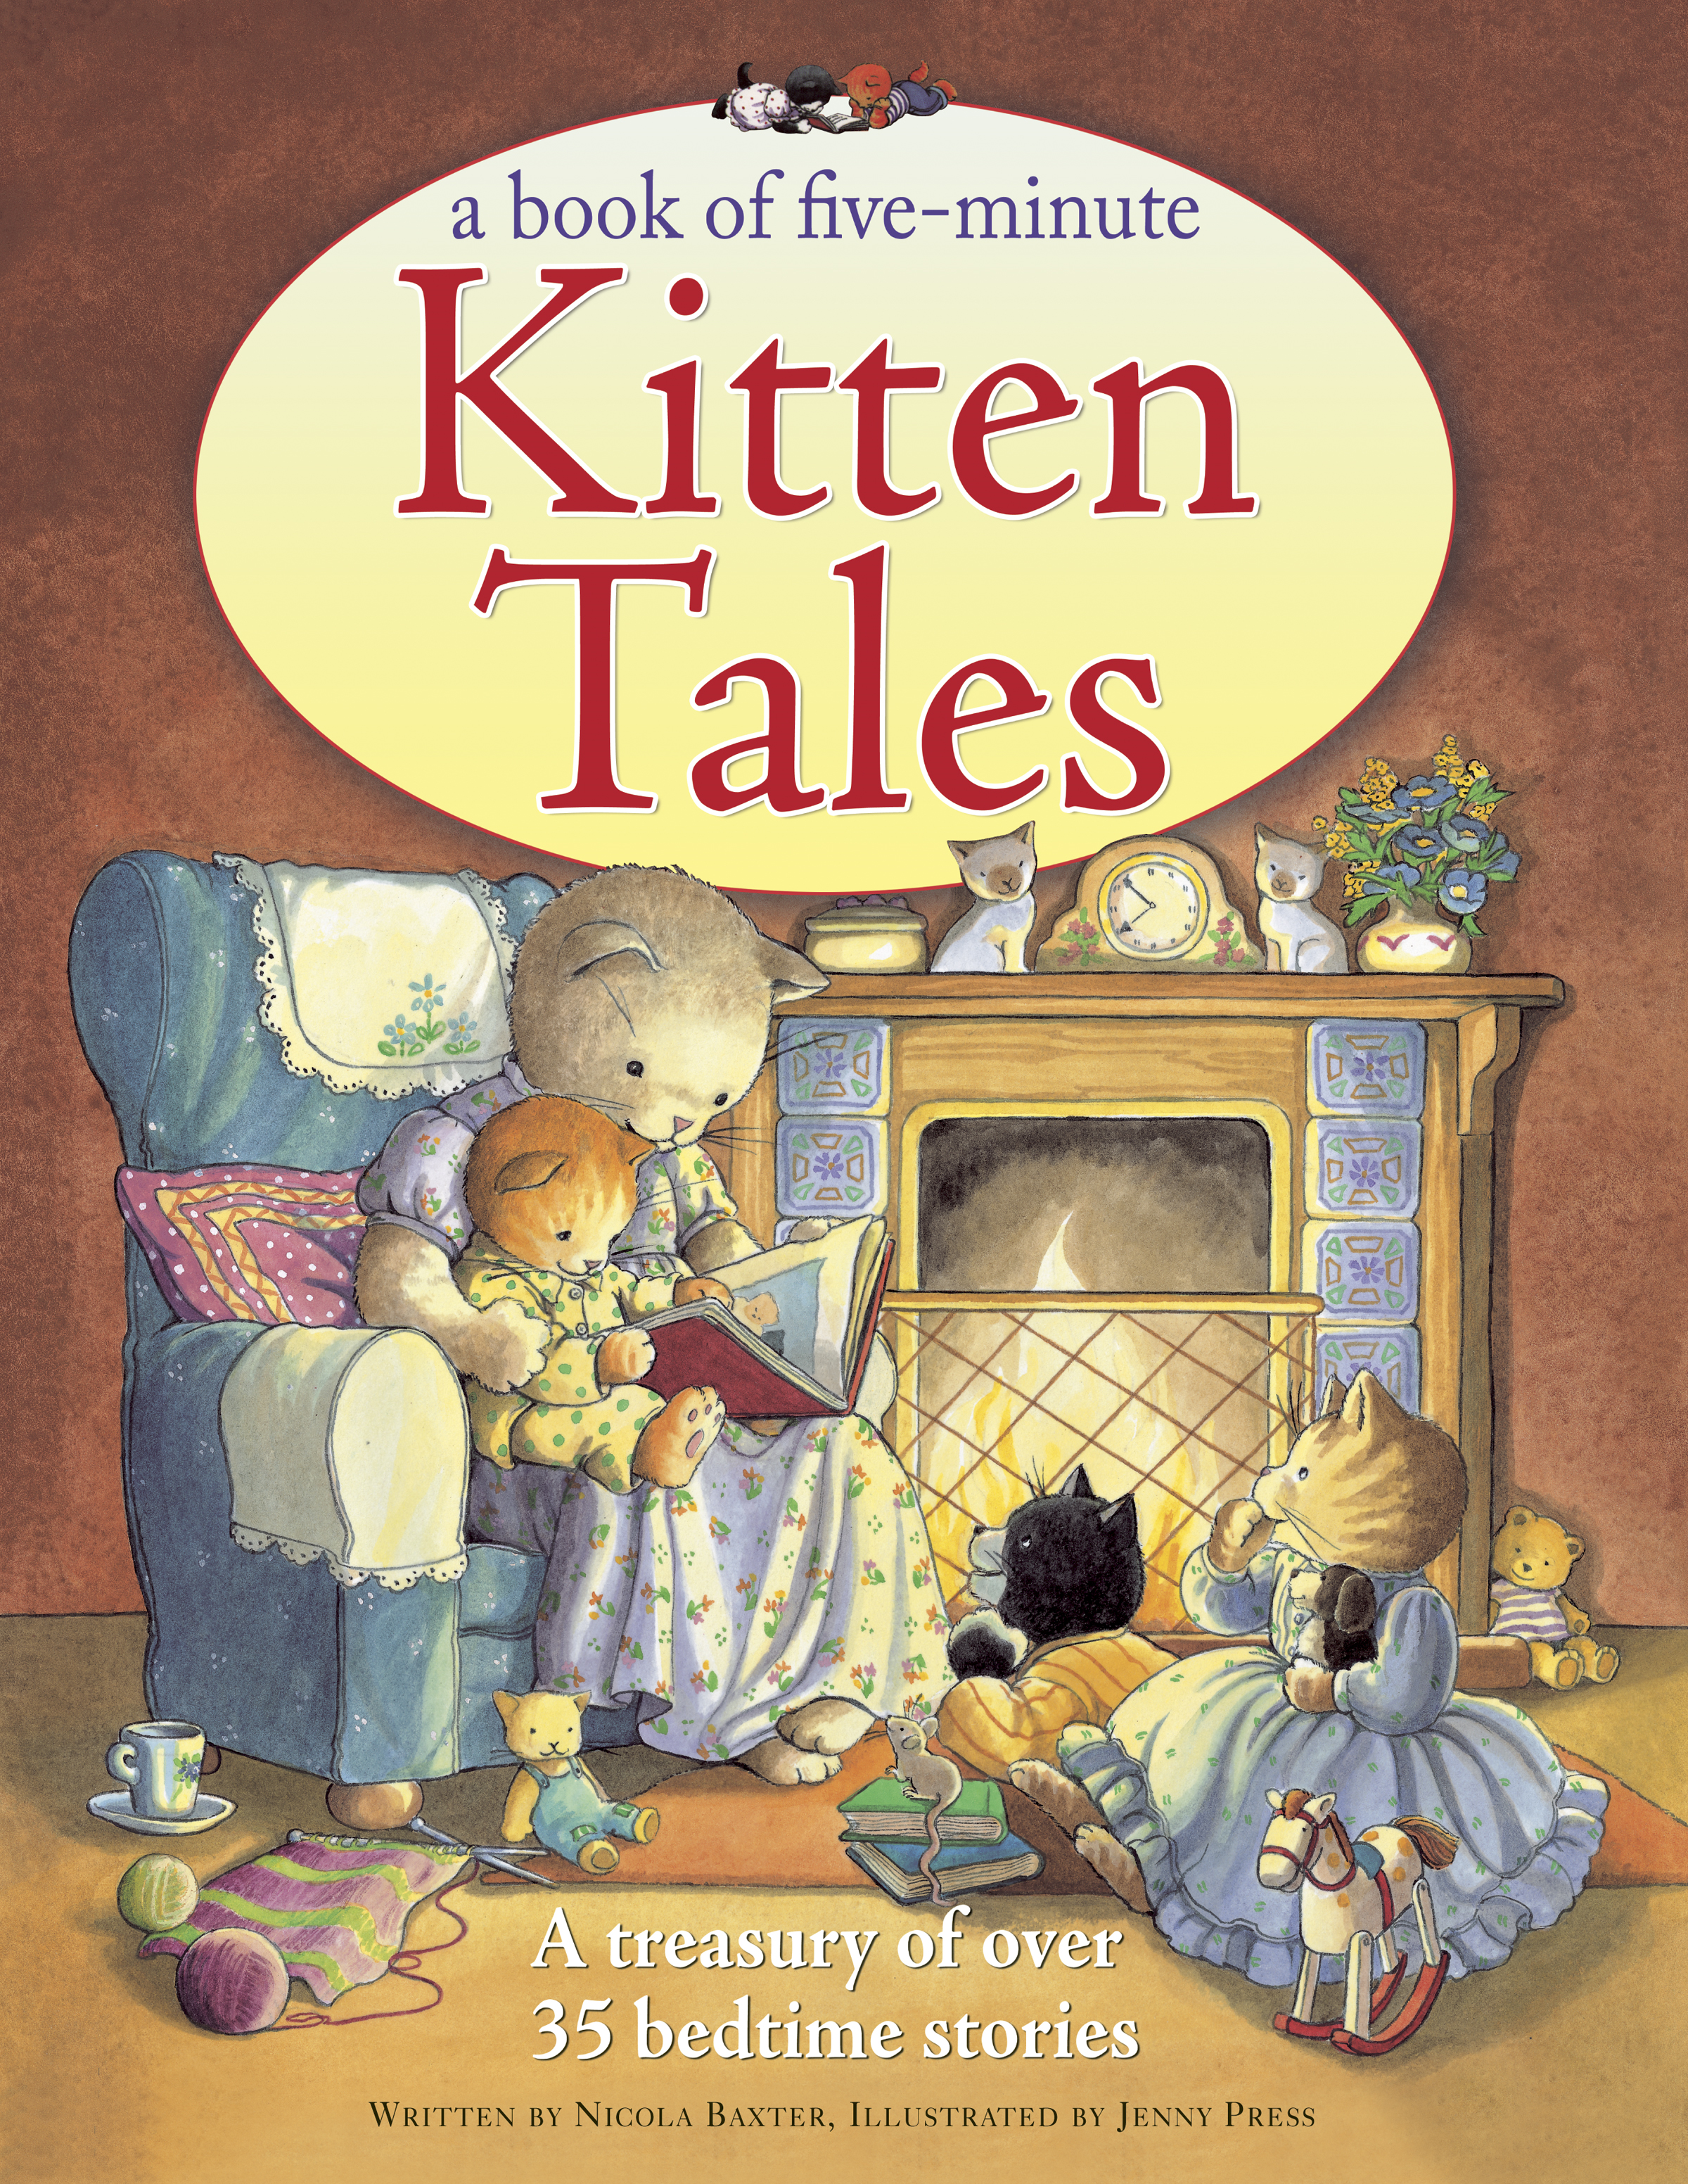 Book of Five-Minute Kitten Tales A Treasury of Over 35 Sleepy-time Stories